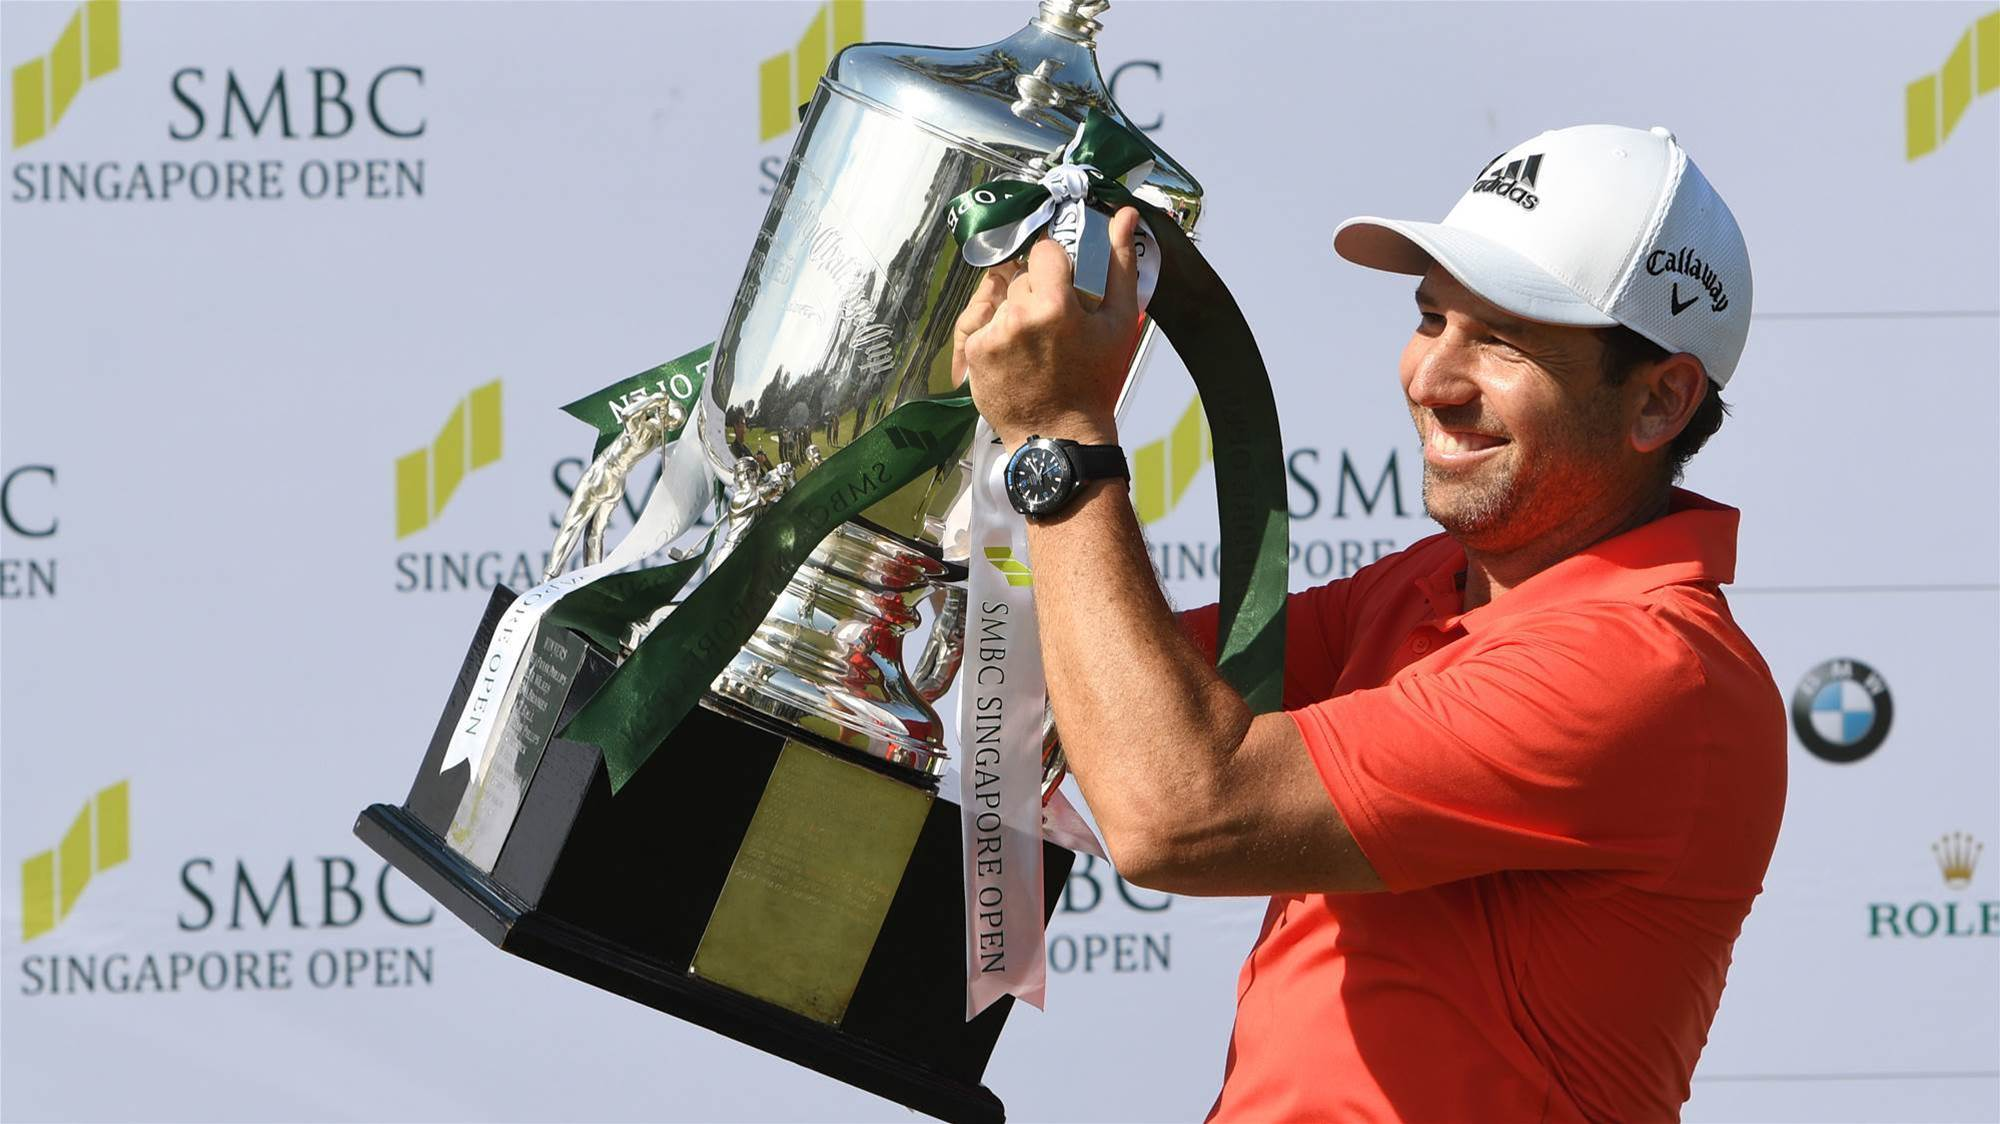 Return of the Champion: Garcia to defend Singapore Open